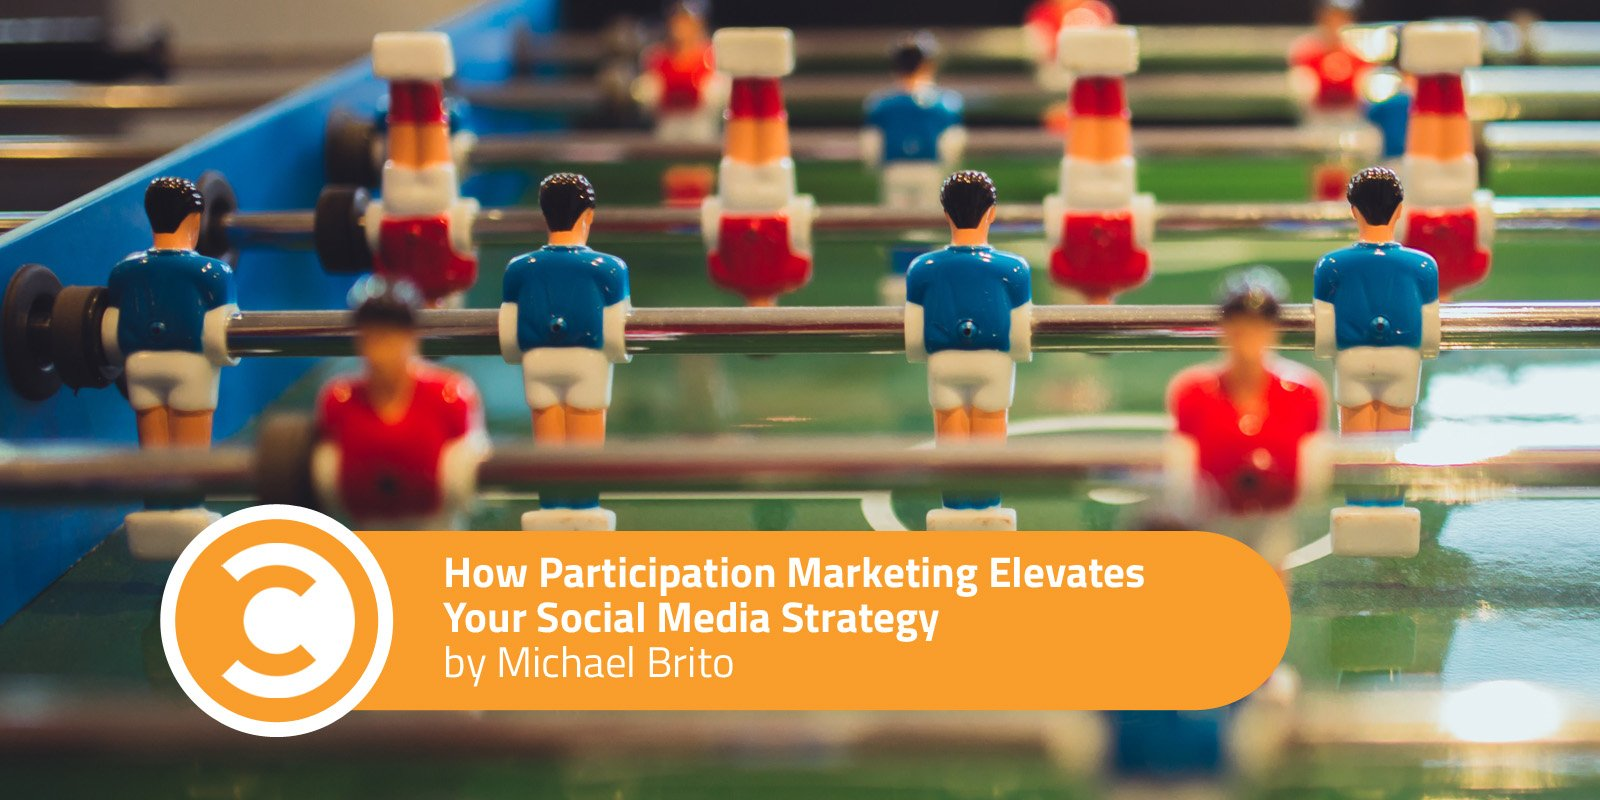 How Participation Marketing Elevates Your Social Media Strategy